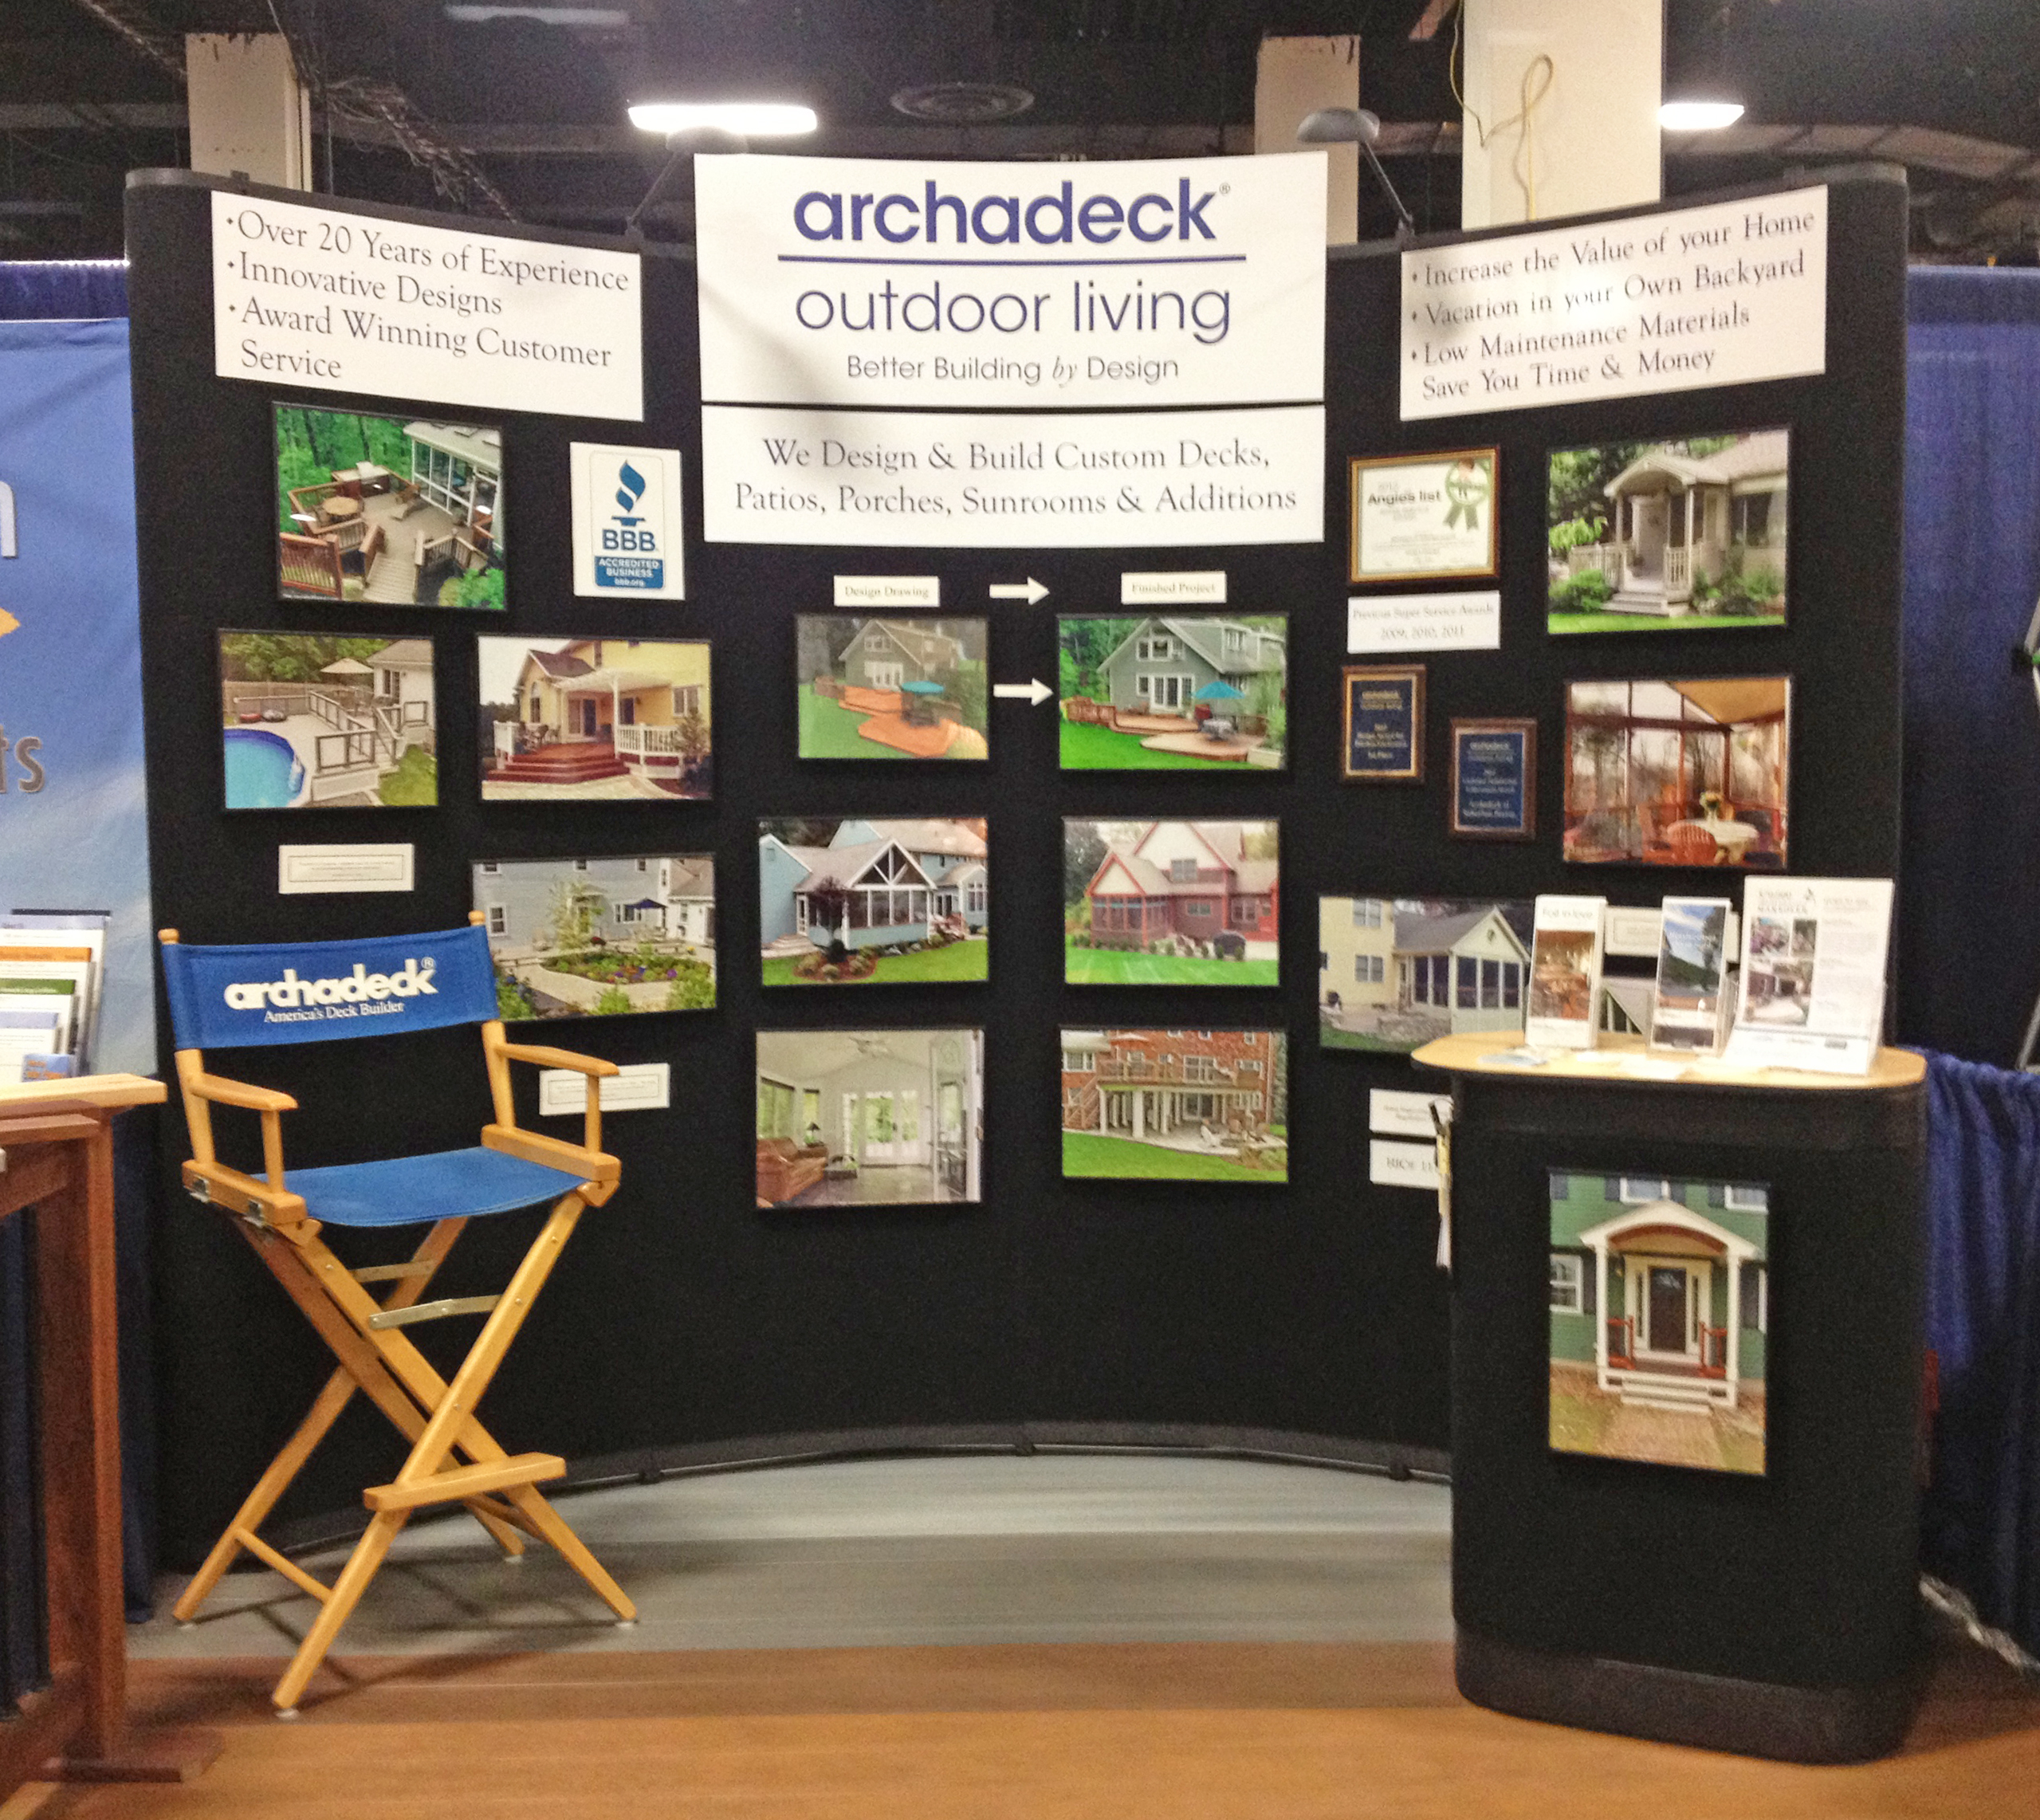 Home and trade shows custom decks porches patios sunrooms and more - Show home design ideas ...